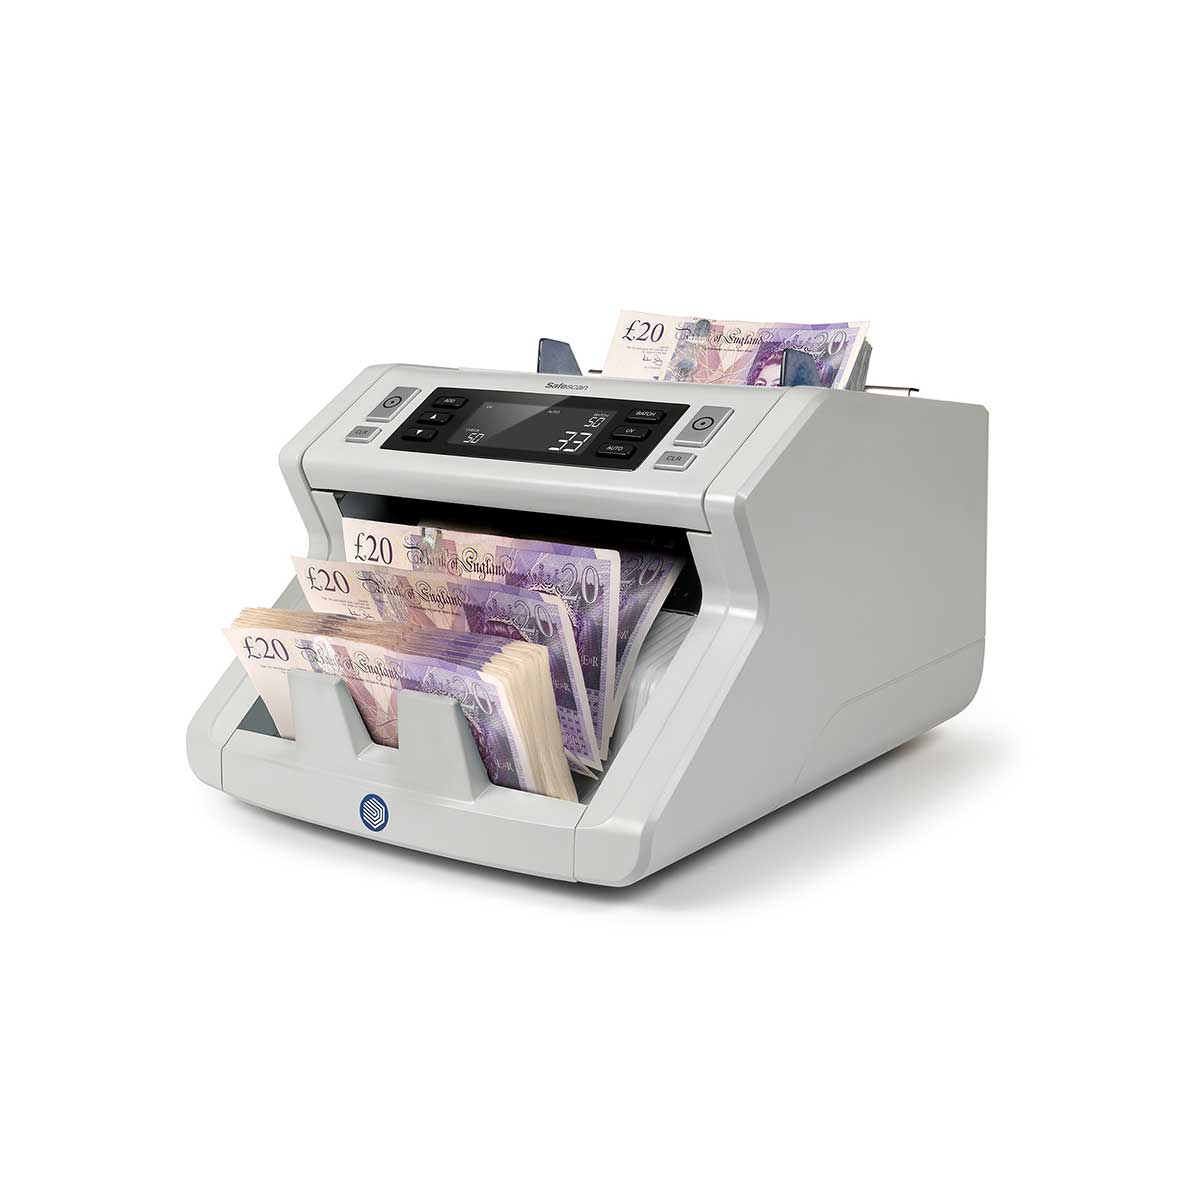 Safescan 2210 Automatic Bank Note Counter with UV Detection